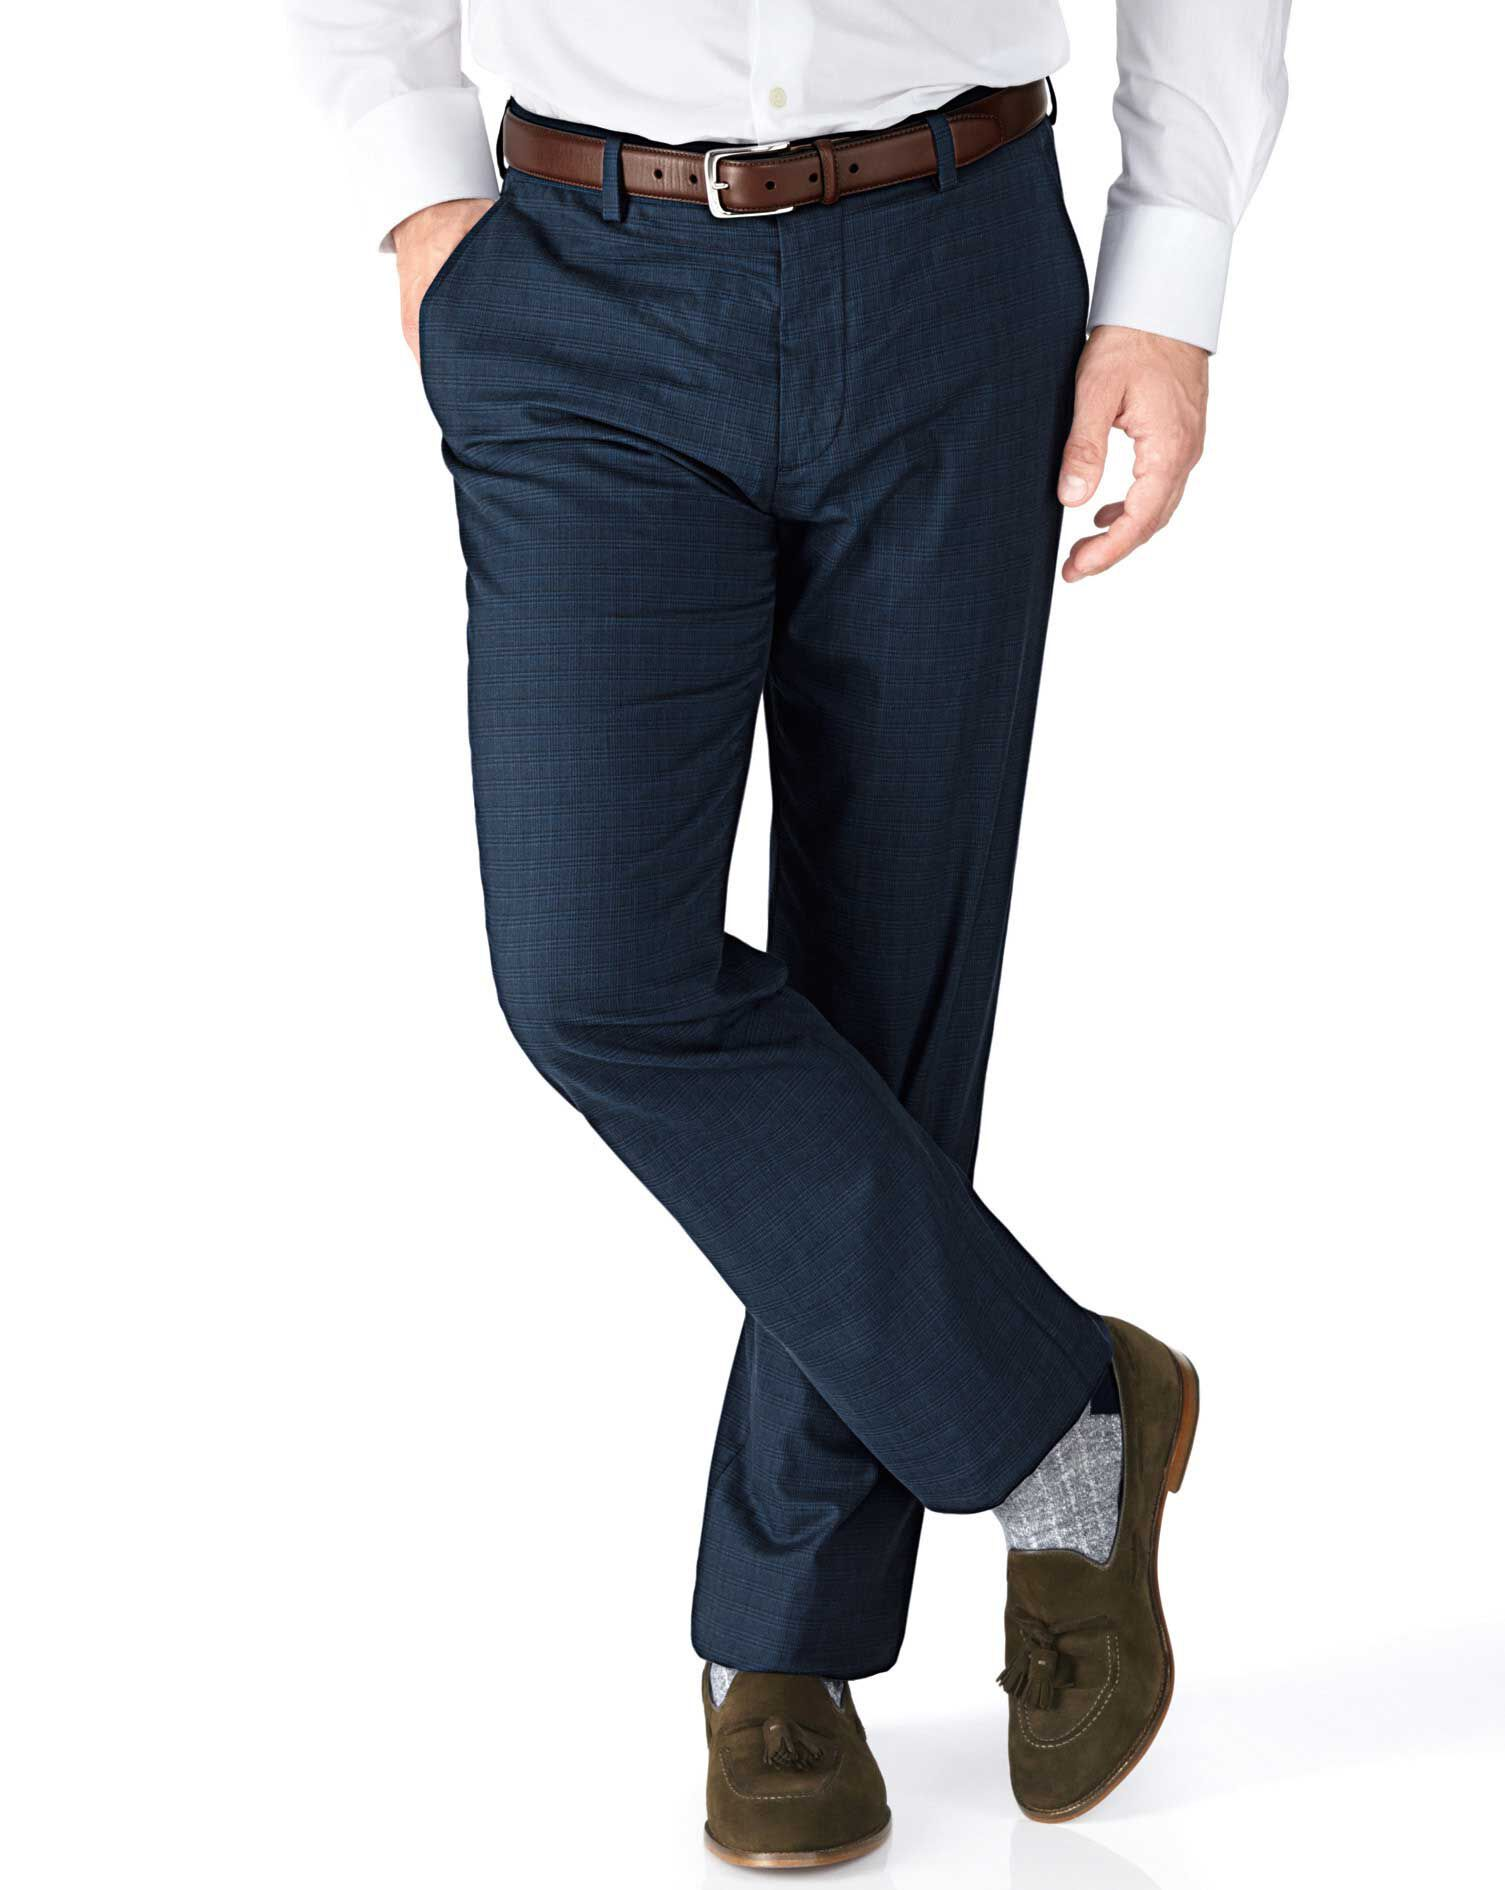 Indigo Slim Fit Prince Of Wales Check Stretch Trousers Size W38 L32 by Charles Tyrwhitt